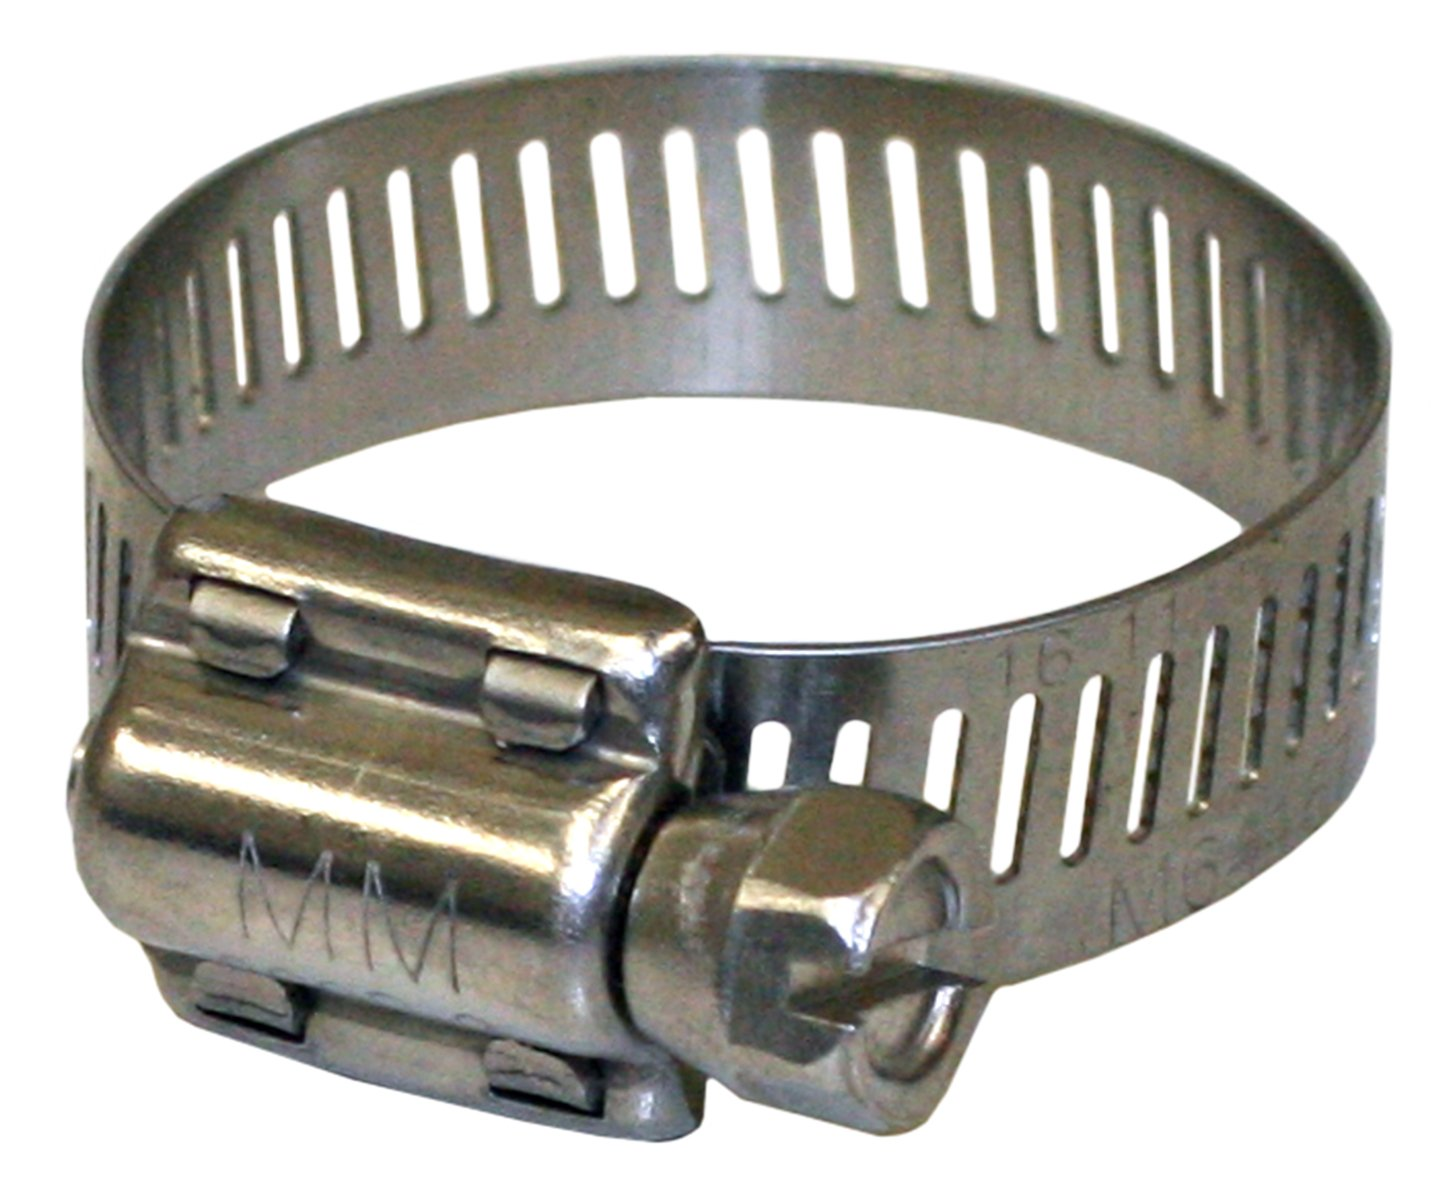 5//16 Hex-Head Screw Pack of 100 Minimum Diameter 1//2 5//16 Hex-Head Screw Minimum Diameter 1//2 Maximum Diameter 1-1//16 0.5 300 Series Stainless Steel Maximum Diameter 1-1//16 0.5 Pack of 100 Merrill MFG 6310 Hy-Gear Clamp 63 Series